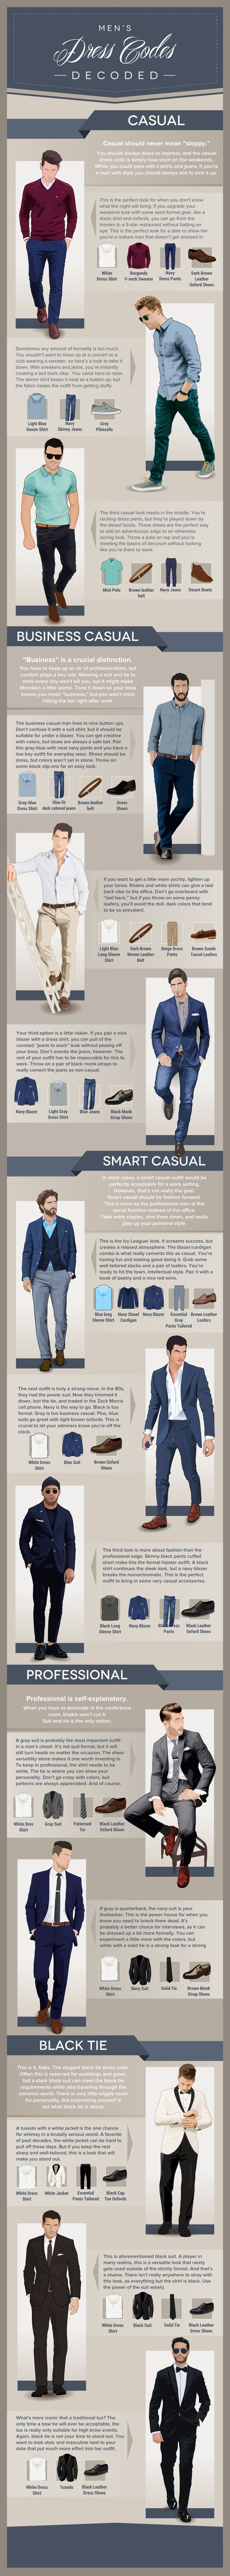 With the oh so many different types of men's dress codes out there,